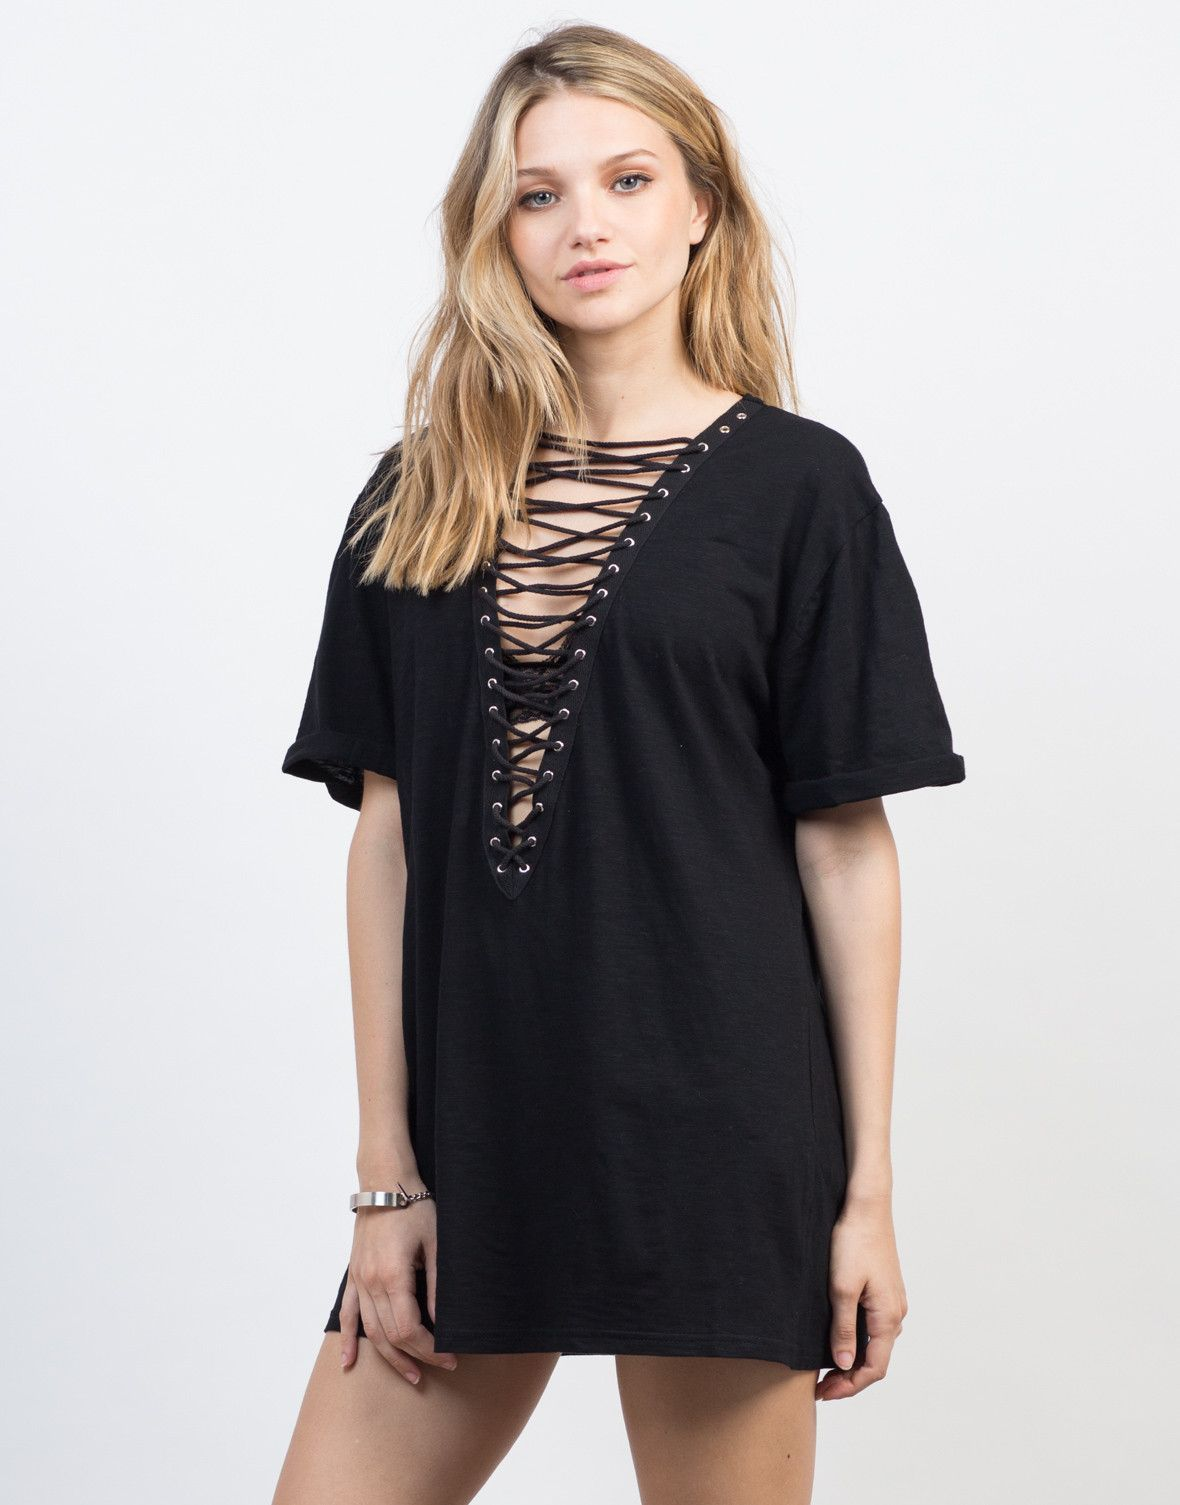 561dd92fa2 Deep V is key. This Lace-Up Deep V Tee will keep you comfy from day to  night with it s cotton fabric.